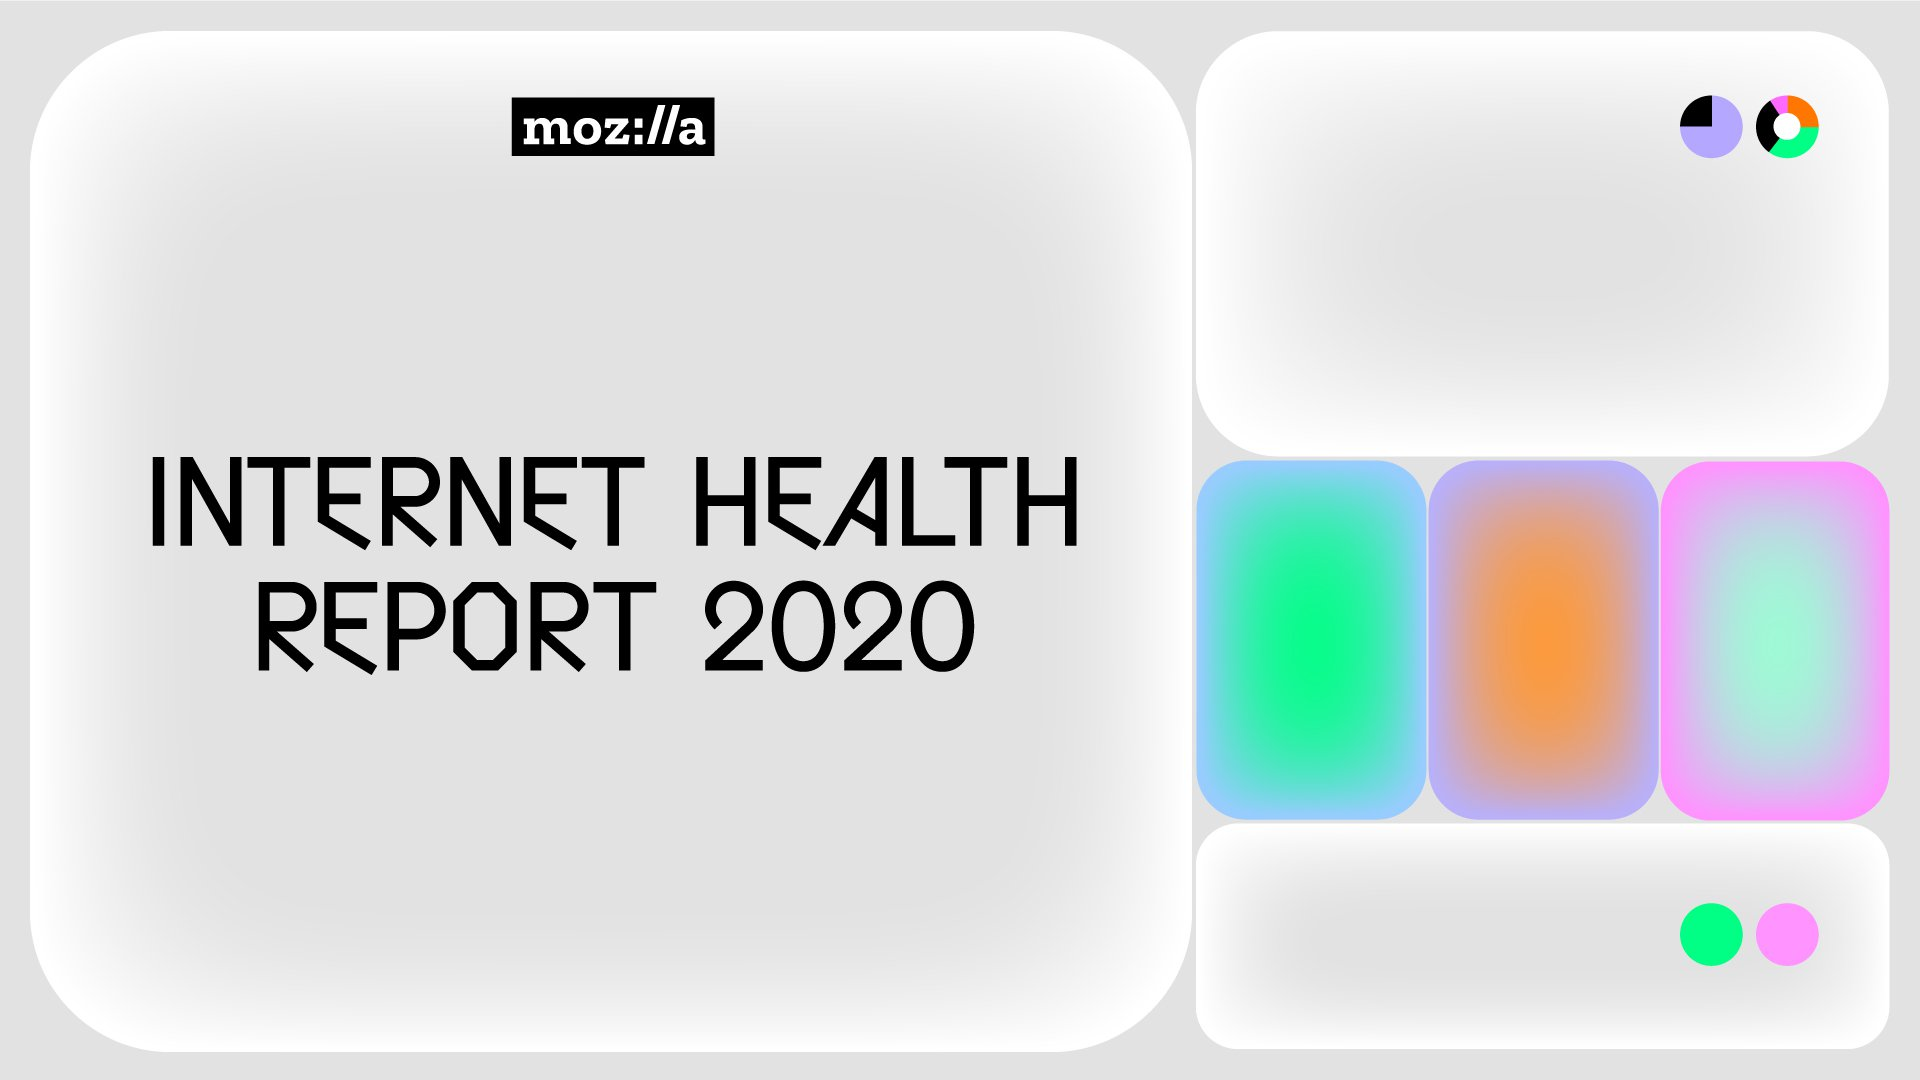 Launched today! Discover the latest Internet Health Report.